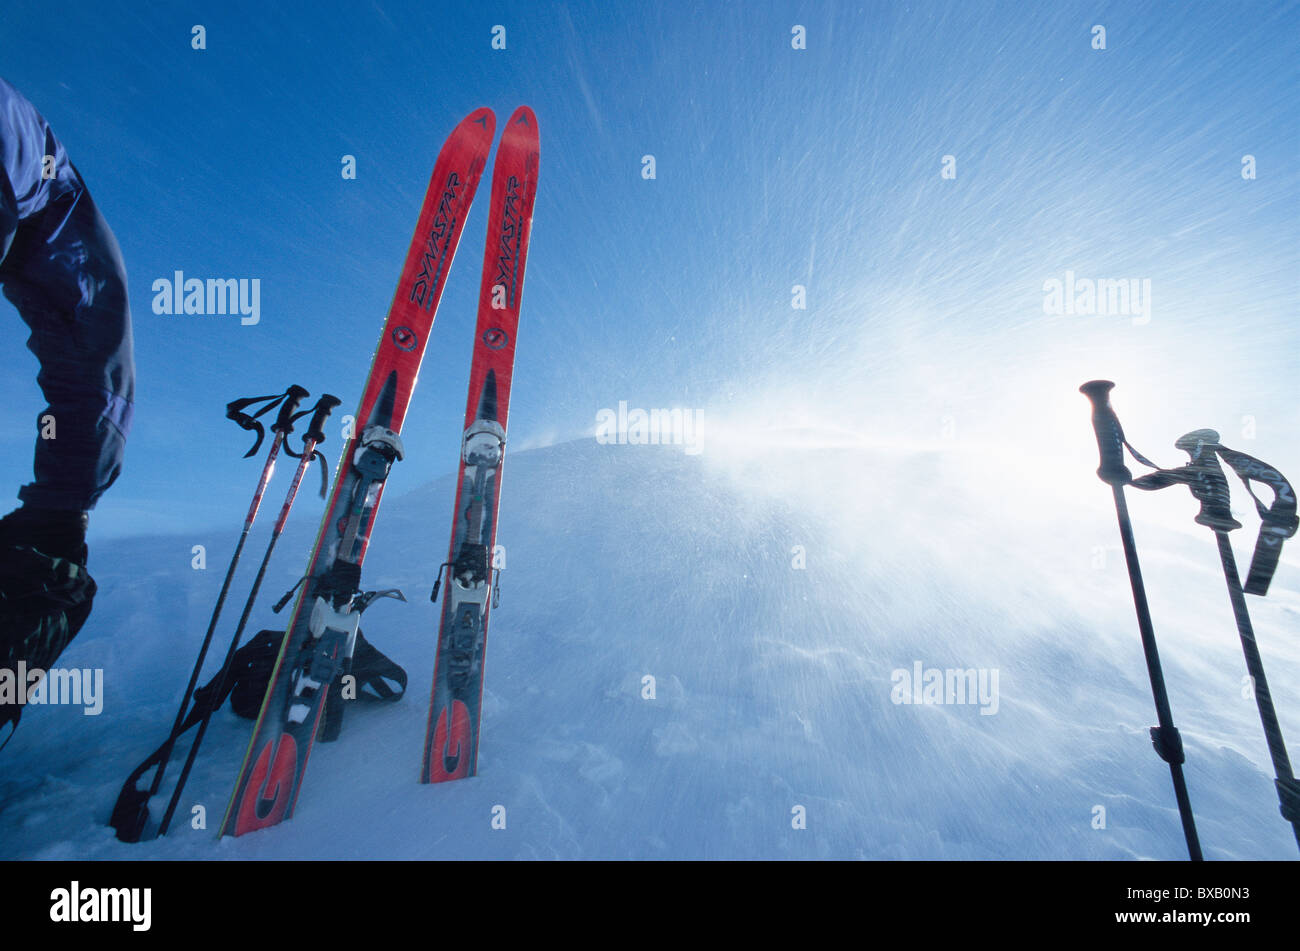 Ski equipment in mountain scenery - Stock Image